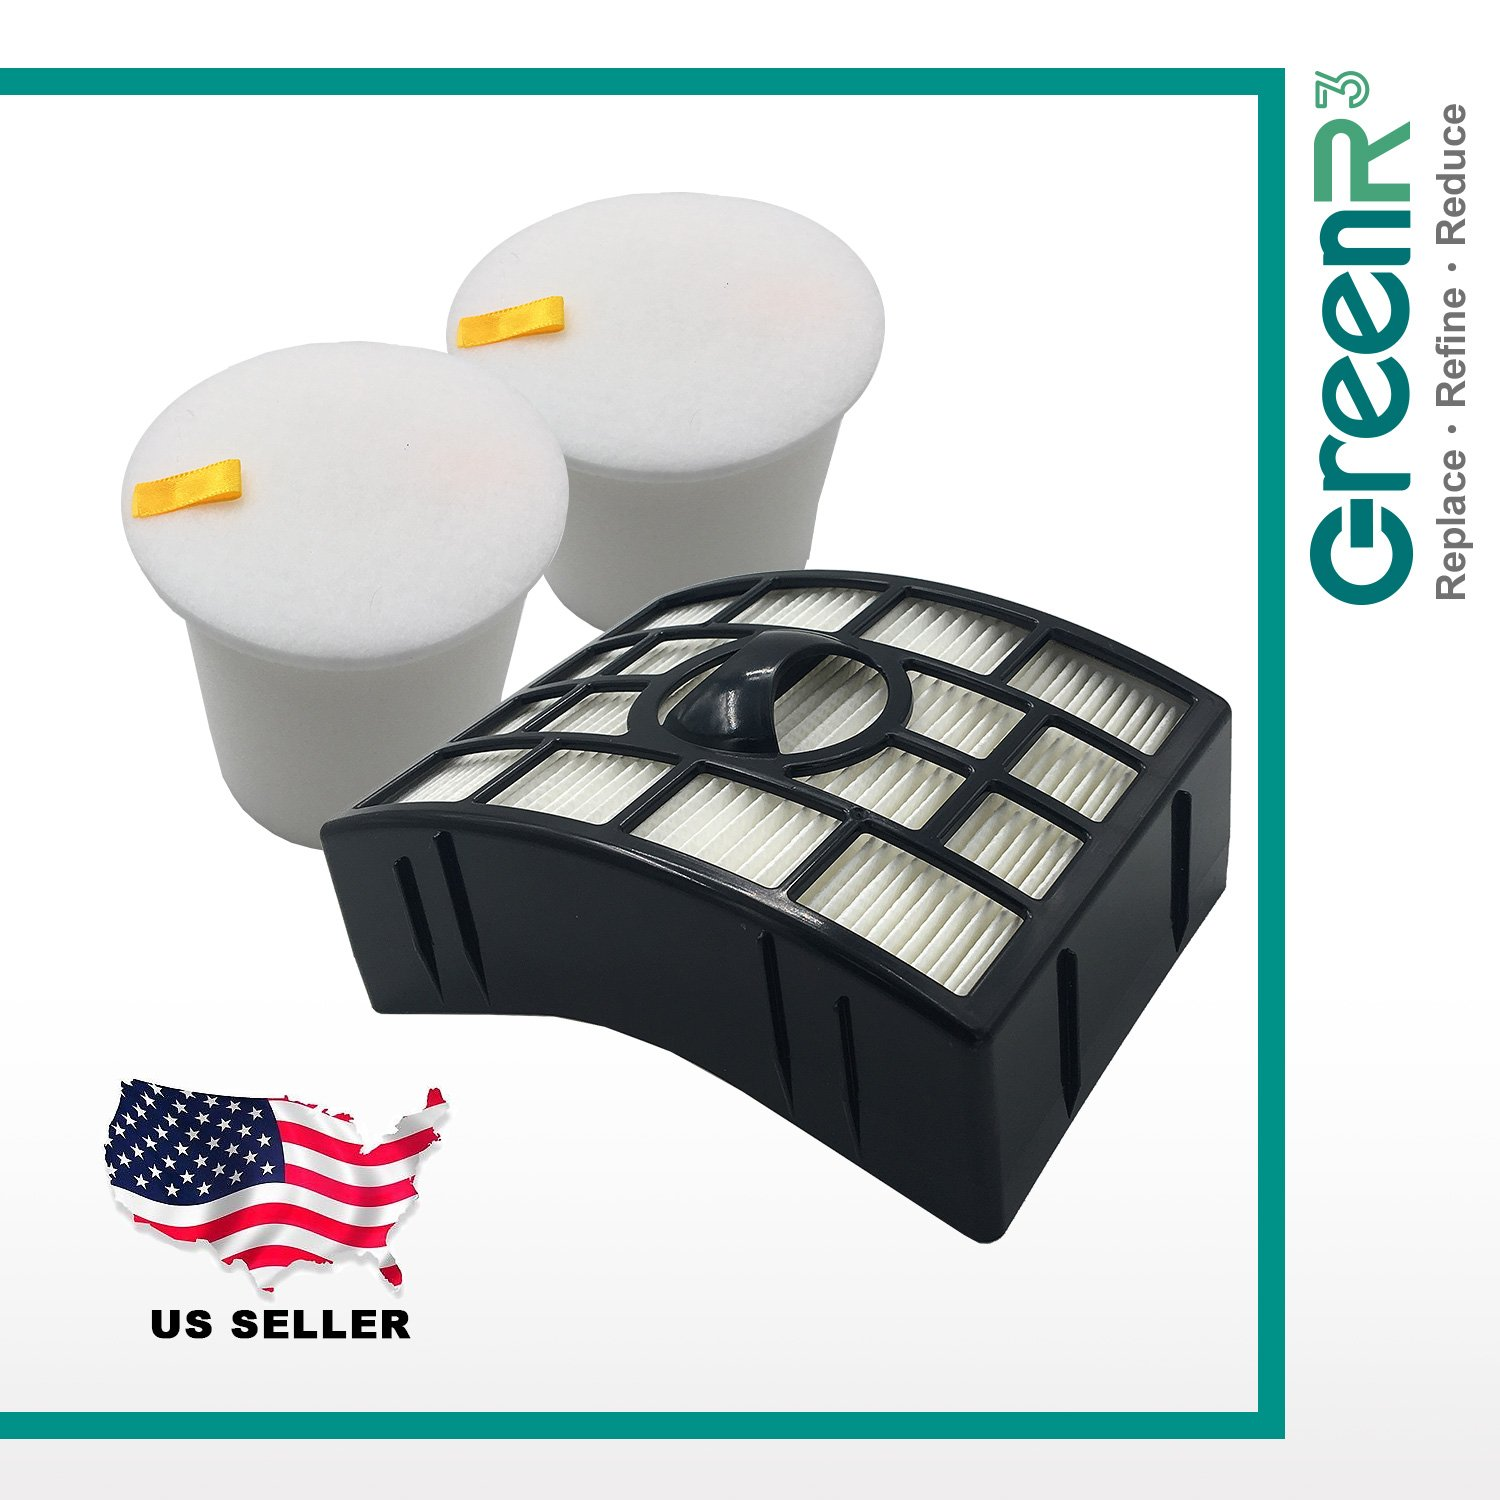 GreenR3 1 SET KIT Air Filters HEPA for SHARK XHF650 & Pre-Motor XFF750 Fits NV755 NV750 NV795 Model Series Parts Replenishment PN replacement and more Compatible